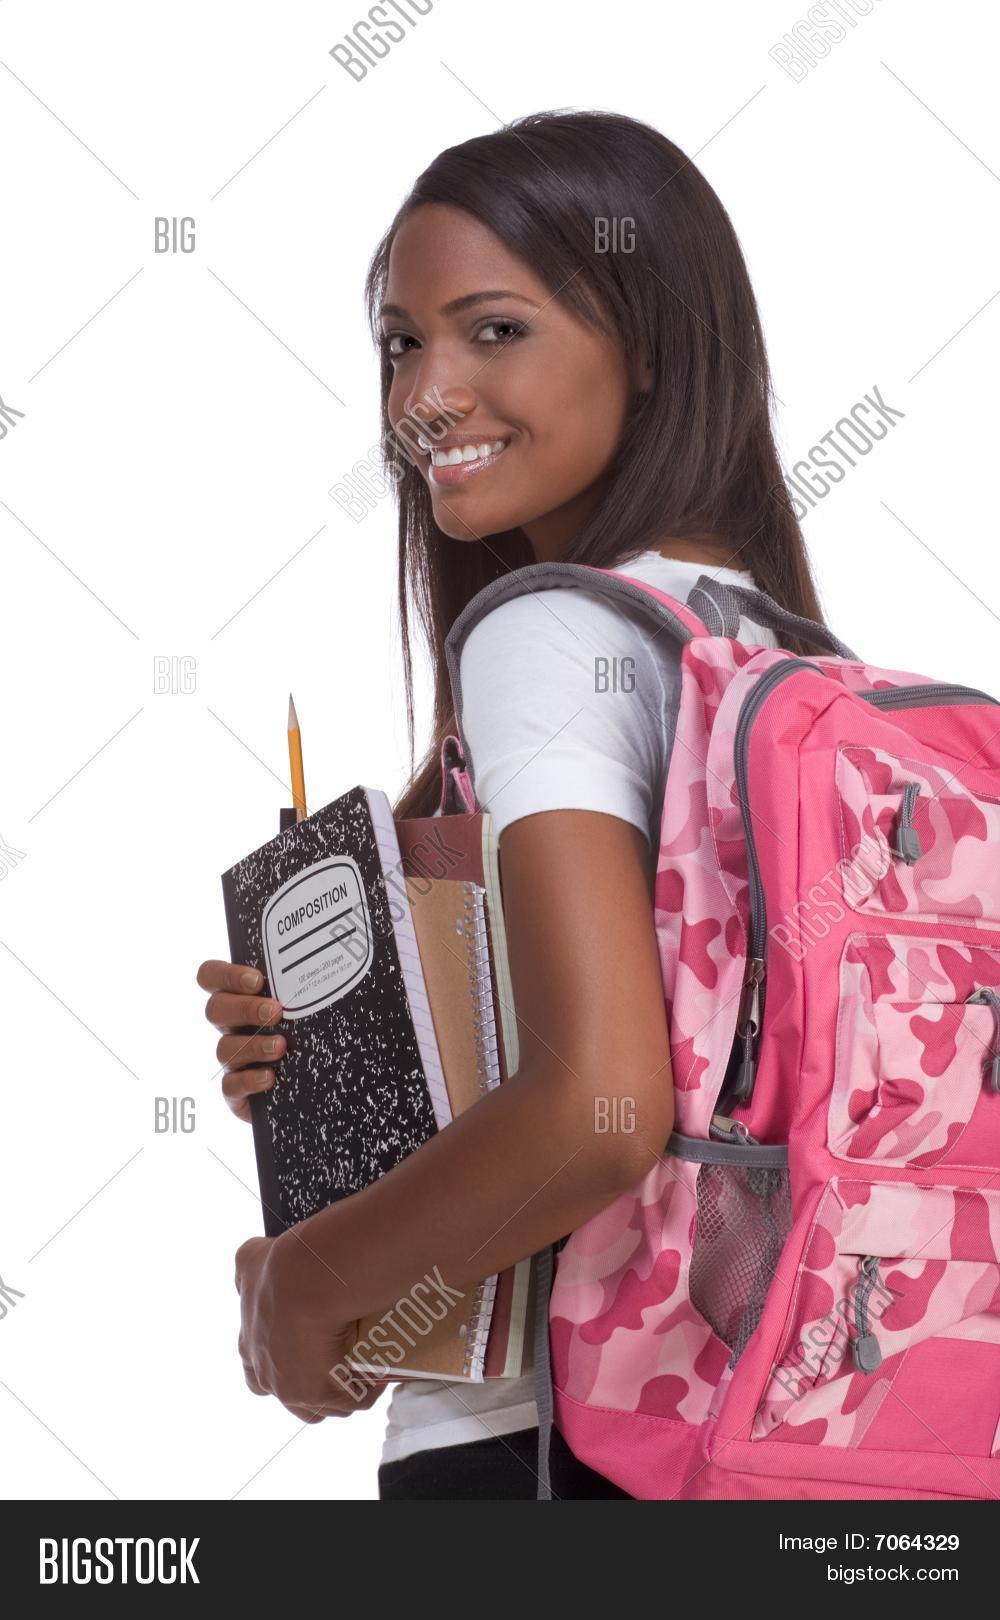 adolescence,adult,african,african-american,african american,african american people,african american woman,african american women,afro,afro-american,american,attractive,back,background,backpack,bag,beautiful,beauty,black,book,brunet,brunette,camera,casual,cheerful,children,class,clothing,college,college students,college students studying,composition,copy,dark,dark-skinned,descent,education,educational,elegance,ethnic,ethnicity,female,freshman,friendly,girl,grace,hair,happiness,high,highschool,high school students,intelligence,isolated,late,learning,long,looking,note,notebook,one,only,pad,pencil,person,pink,ponytail,school,schoolgirl,shoulder,skinned,smile,smiling,space,spiral,standing,student,studying,t-shirt,teen,teenage,teenager,toothy,tuition,university,white,woman,women,years,young,youth